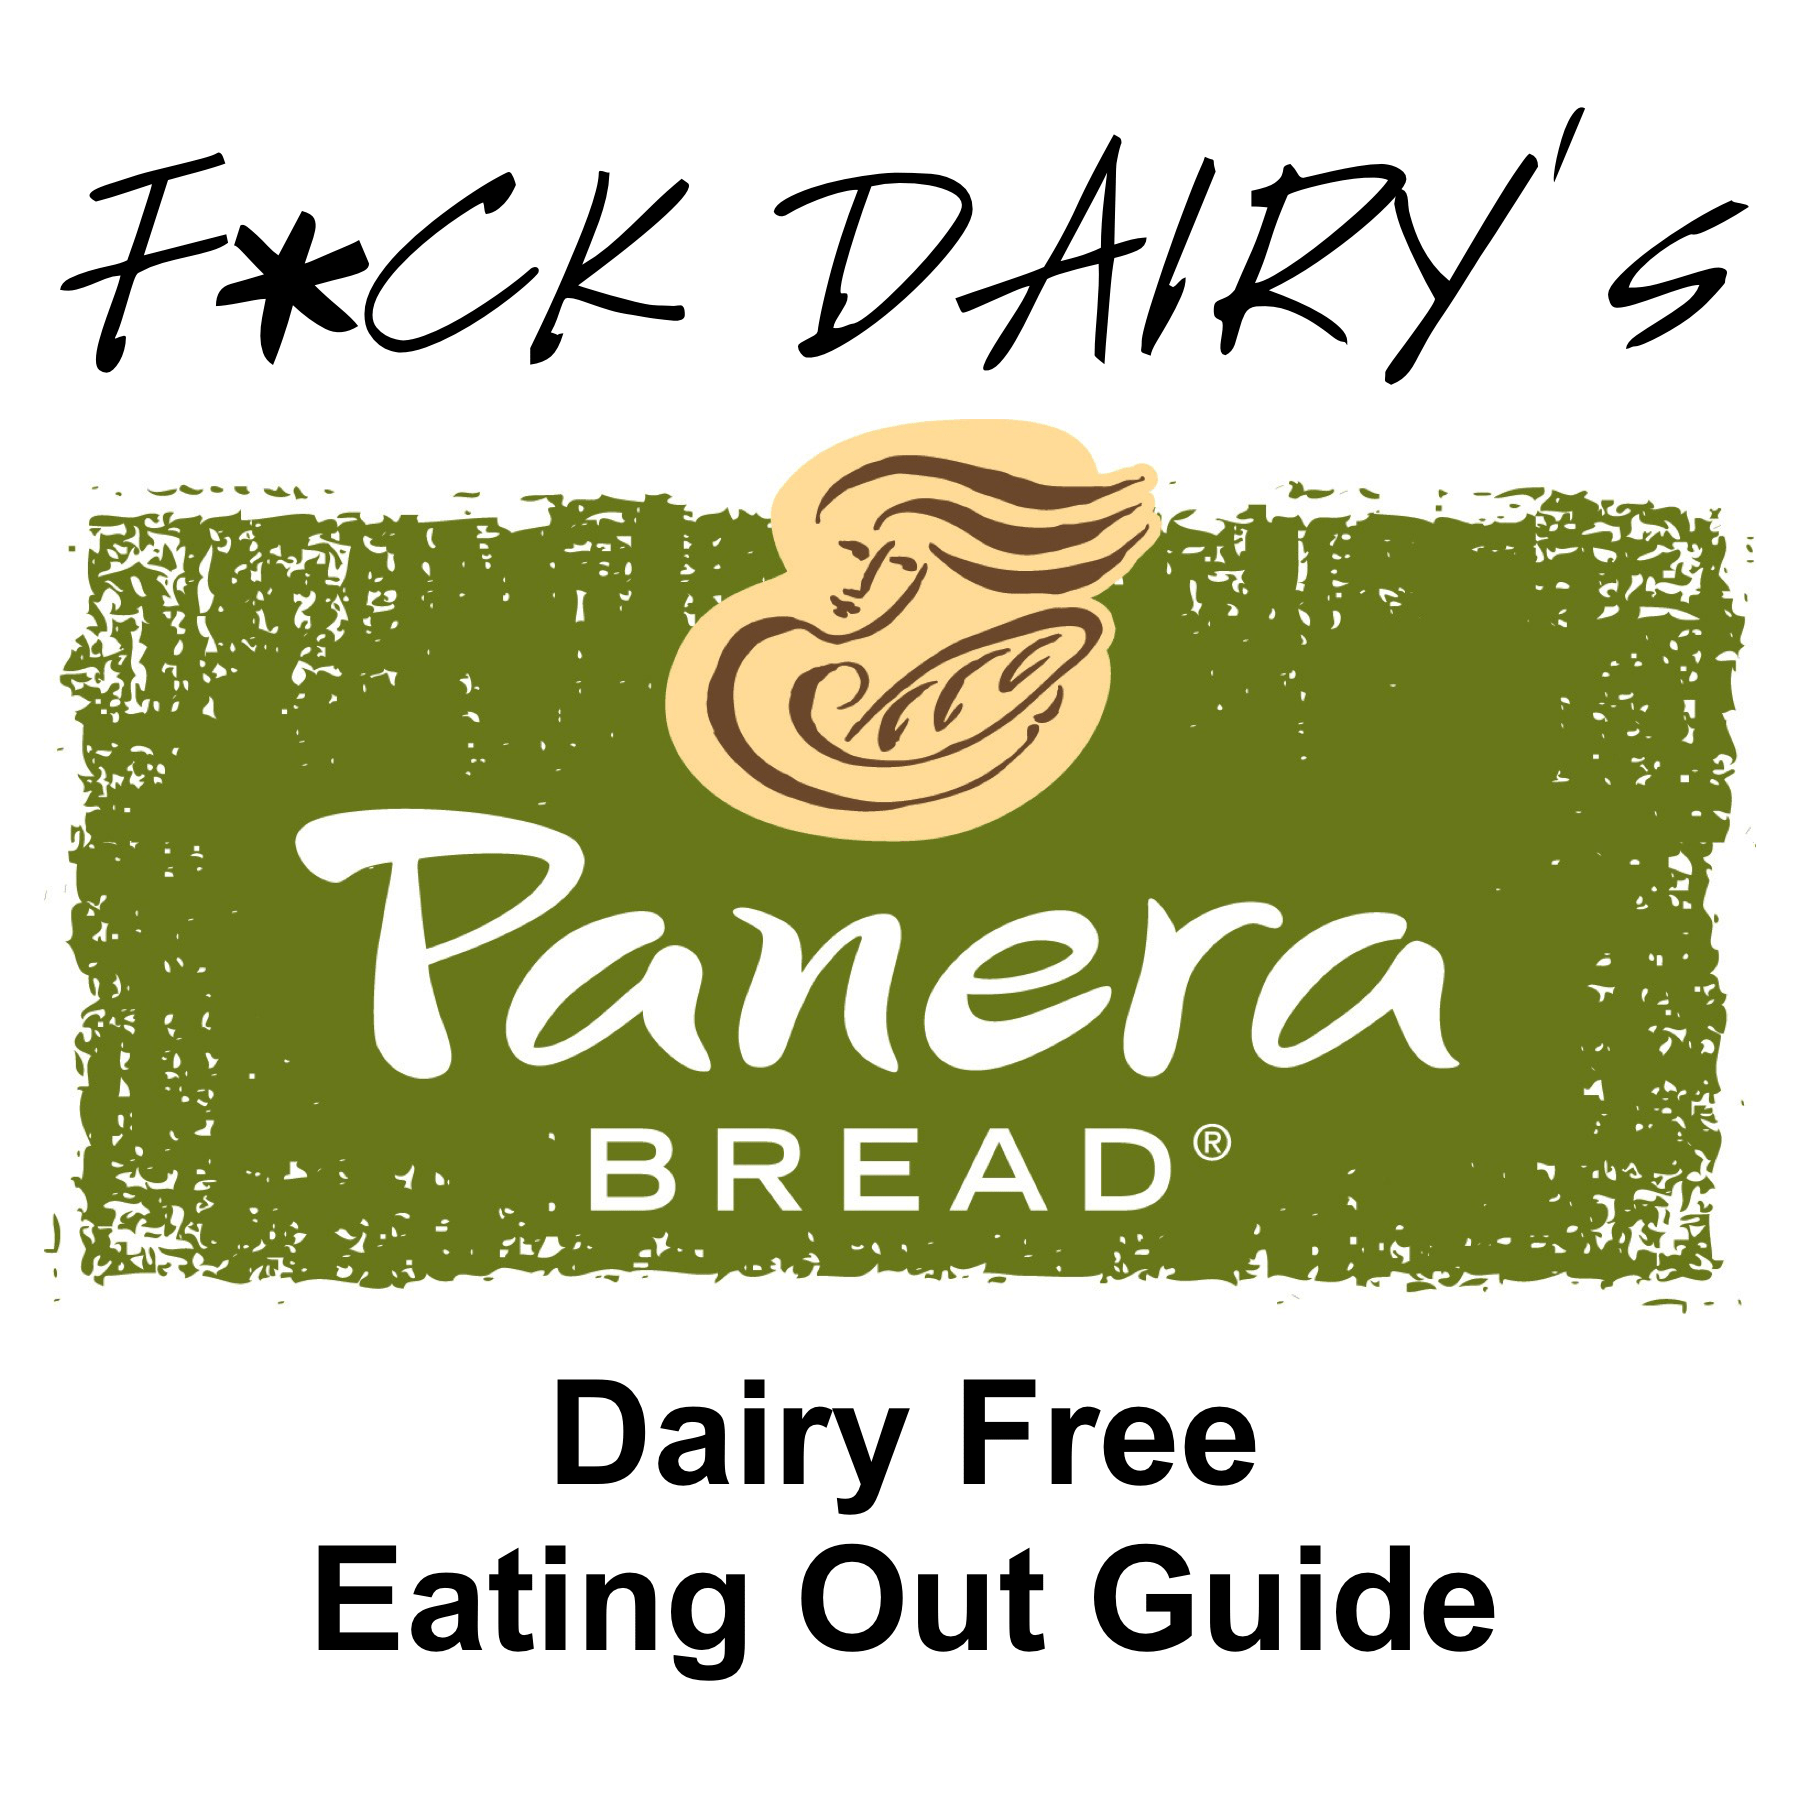 Dairy Free Guide to Eating at Panera Bread fck dairy